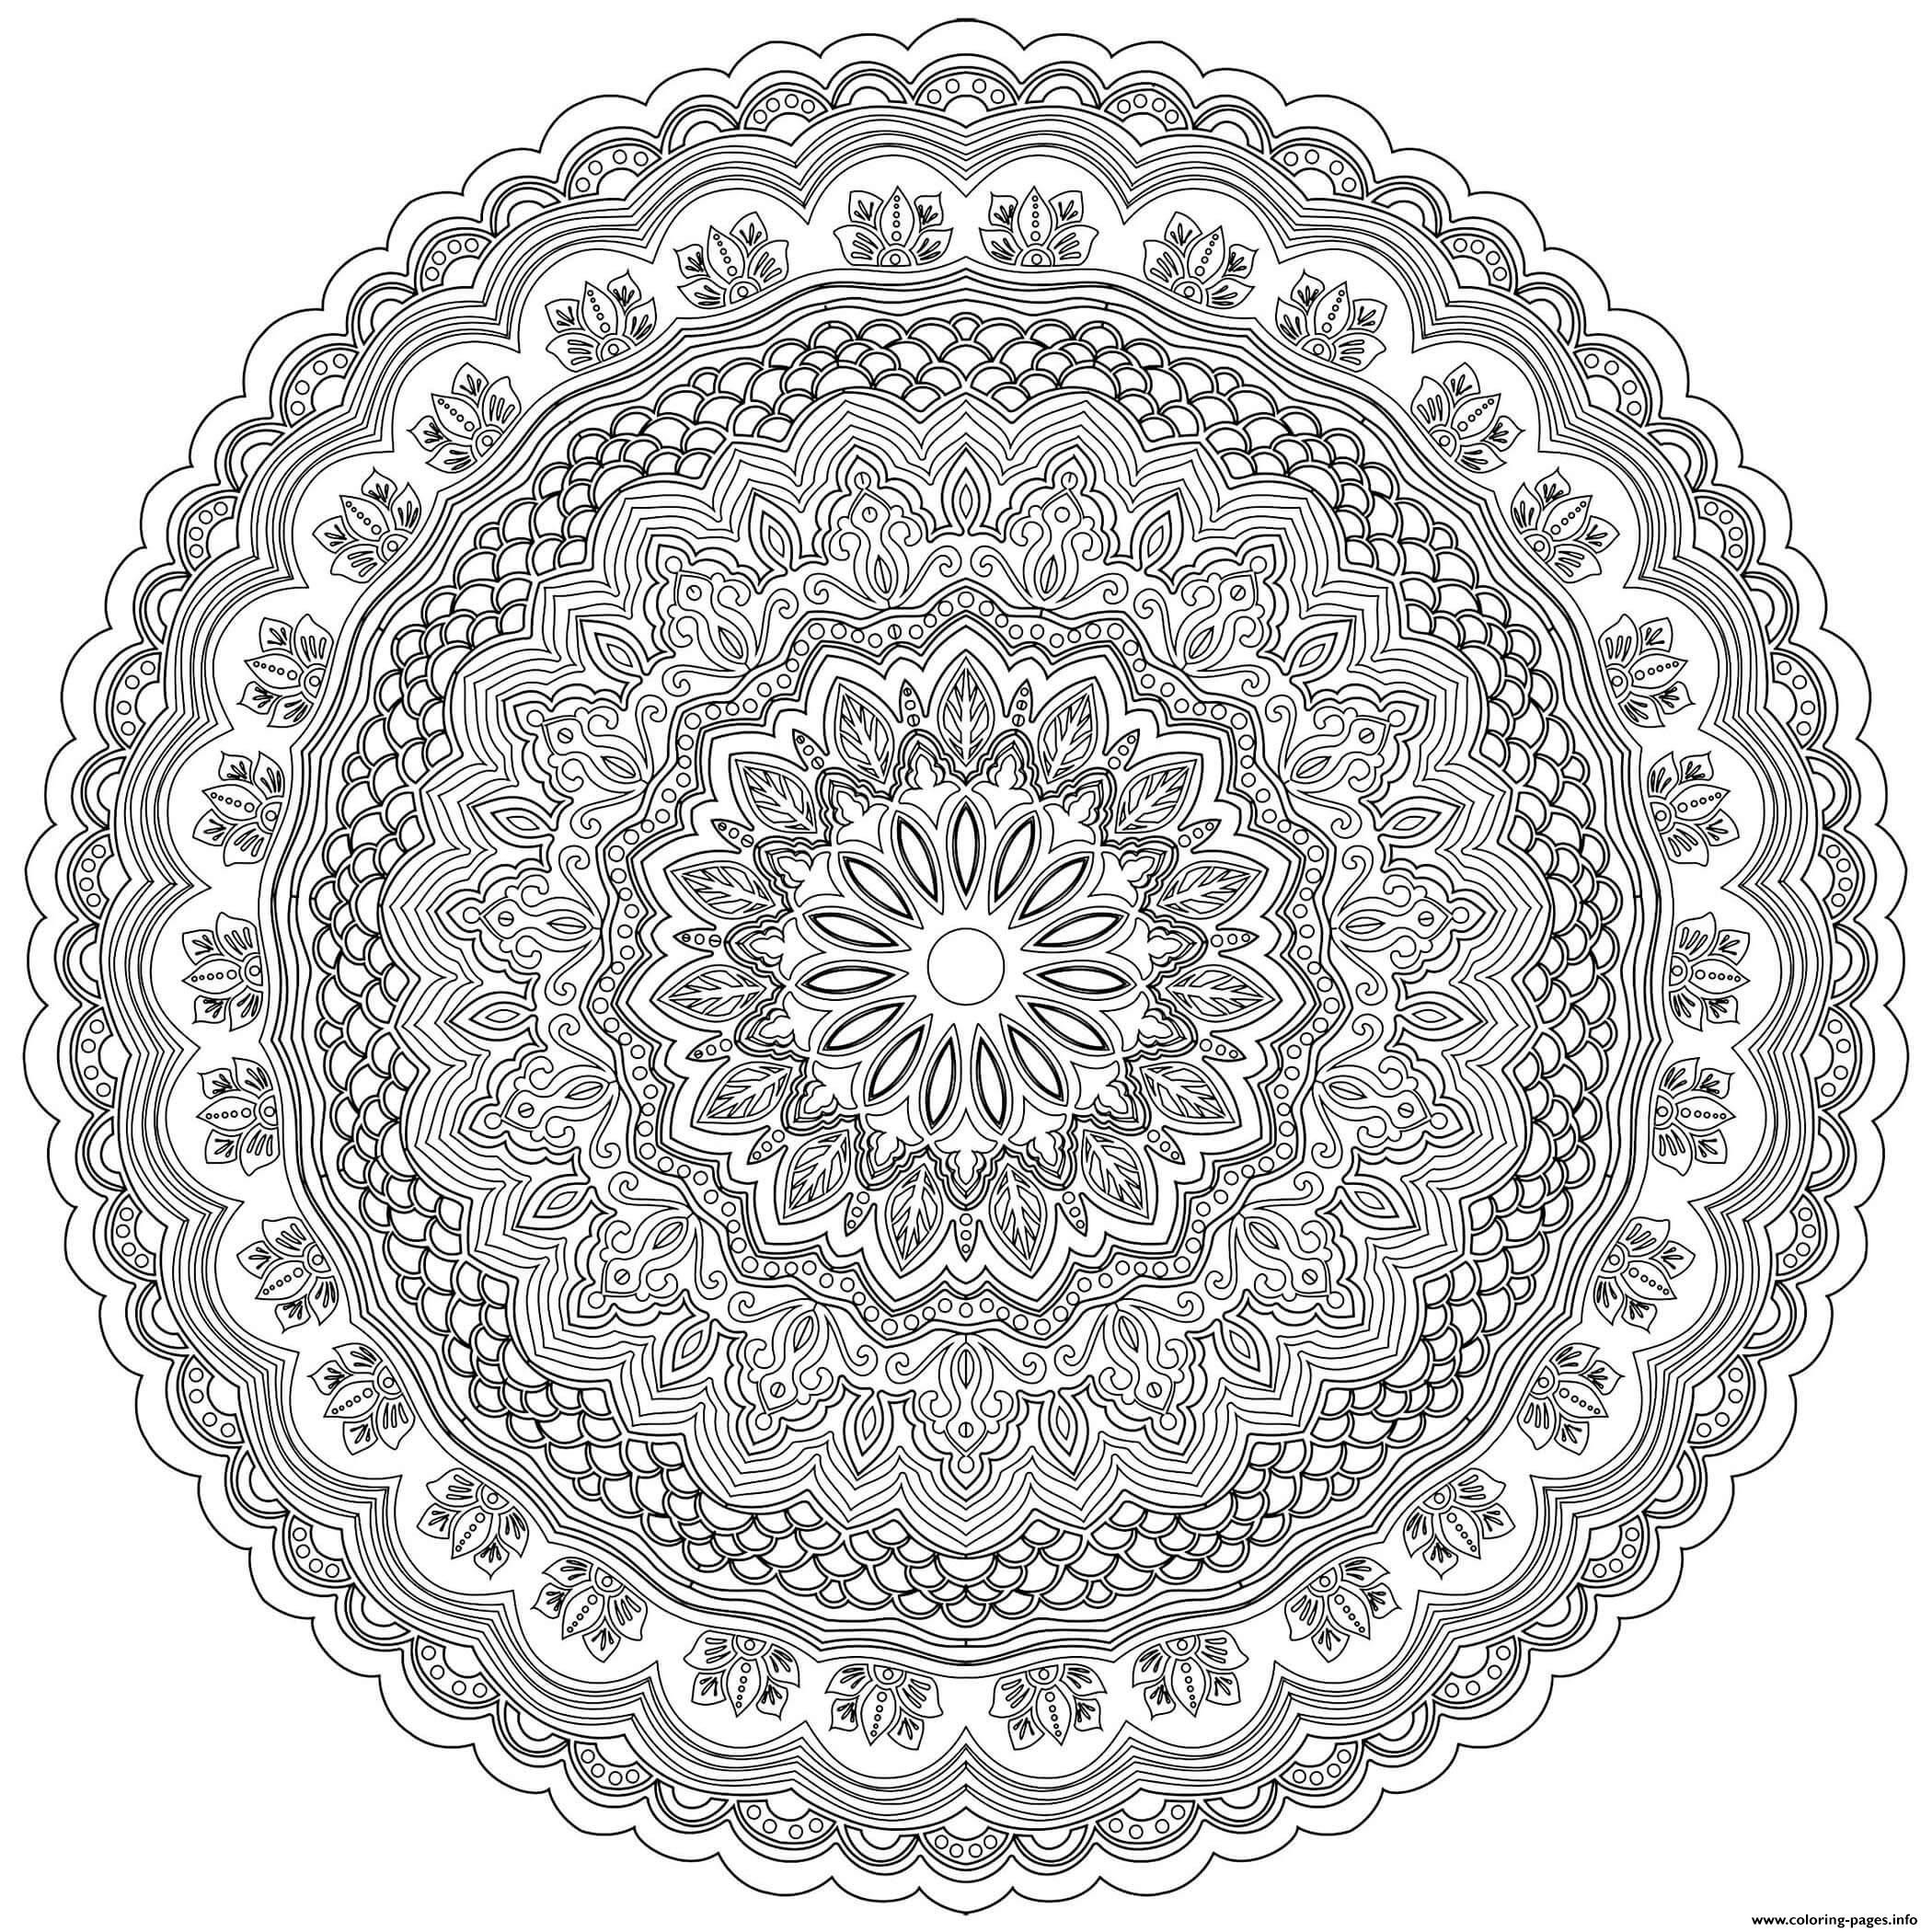 Mandala Zen Antistress Adult 2019 coloring pages